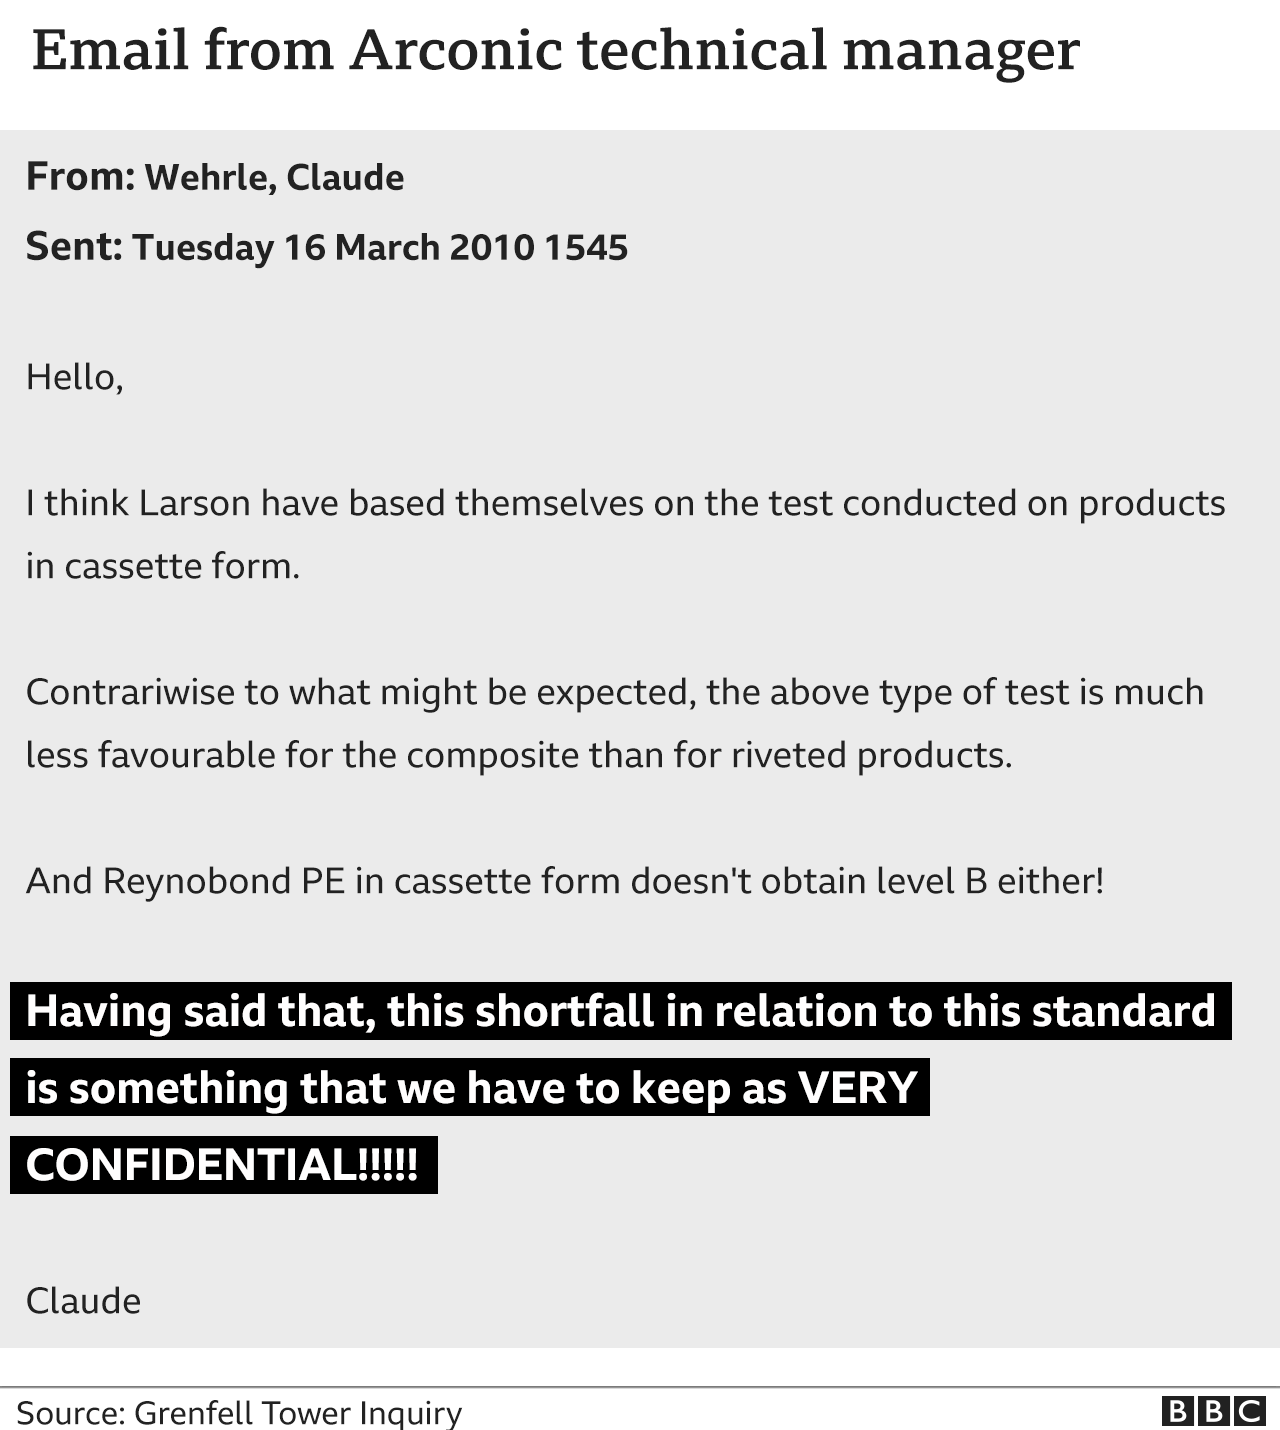 Graphic showing email from Arconic technical manager